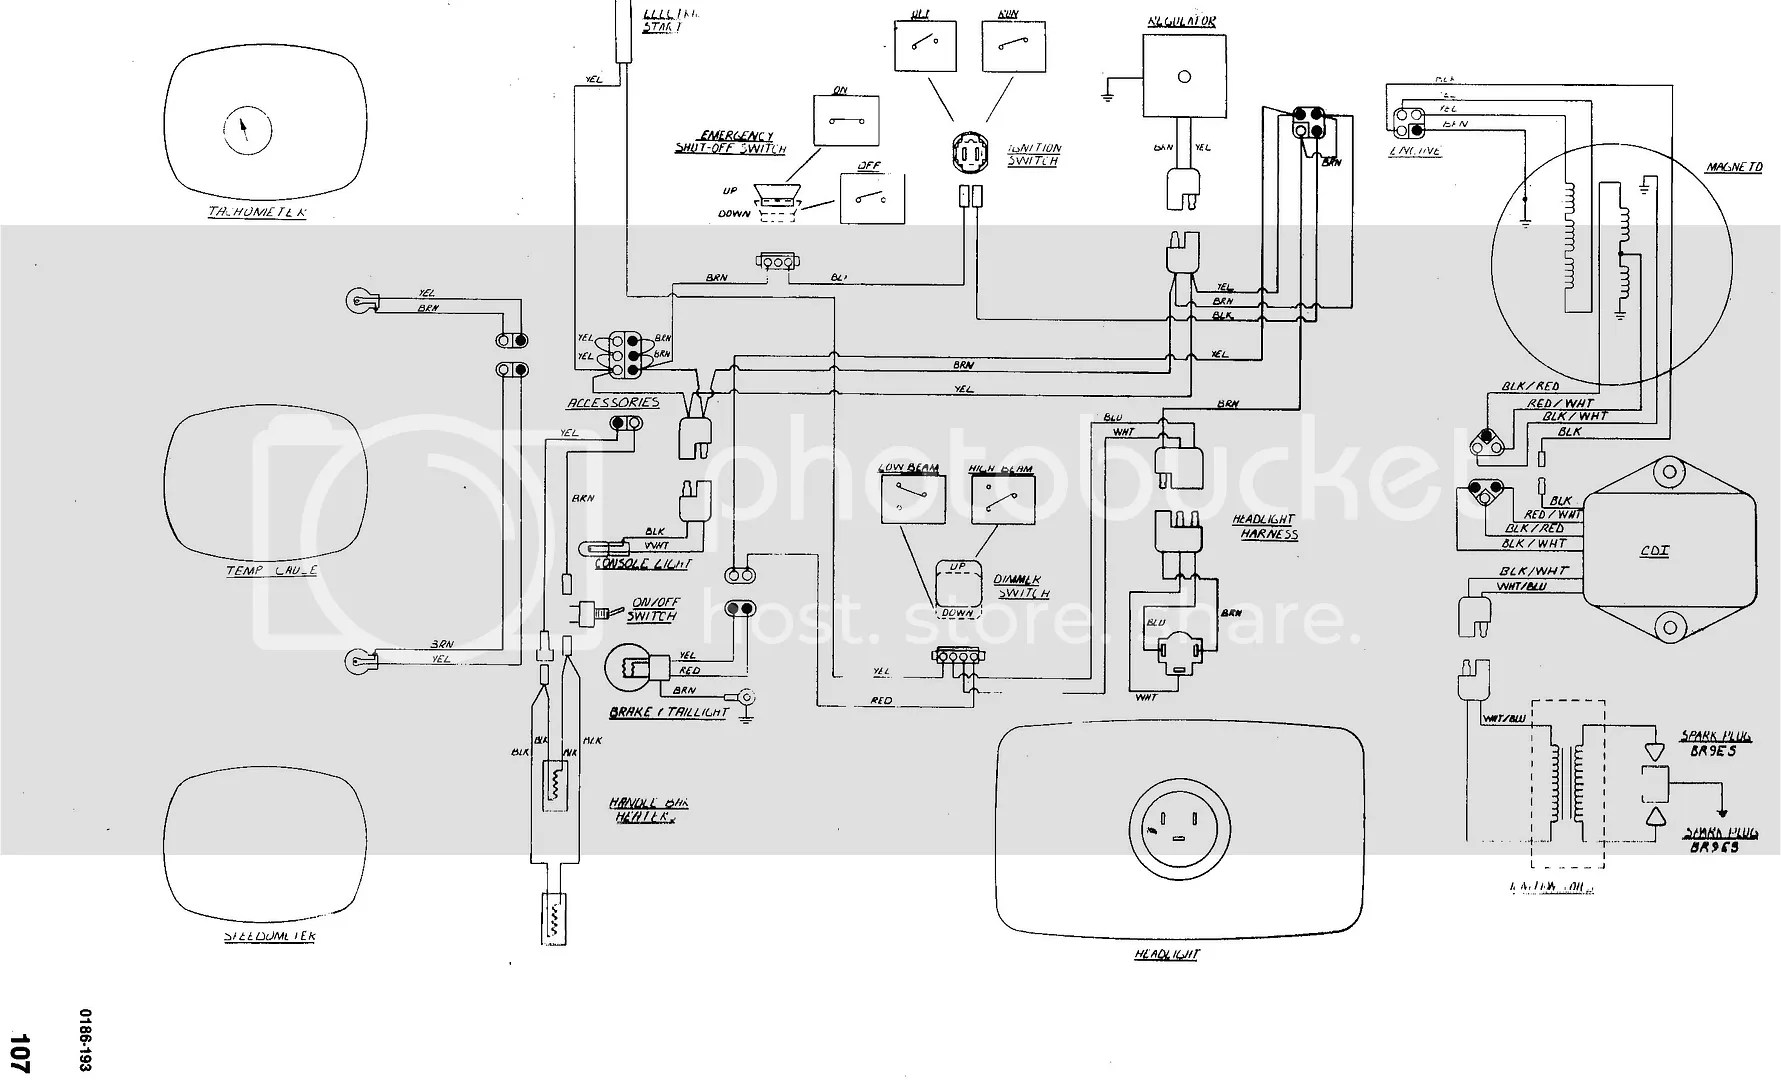 Arctic Cat 580 Ext Wiring Diagram